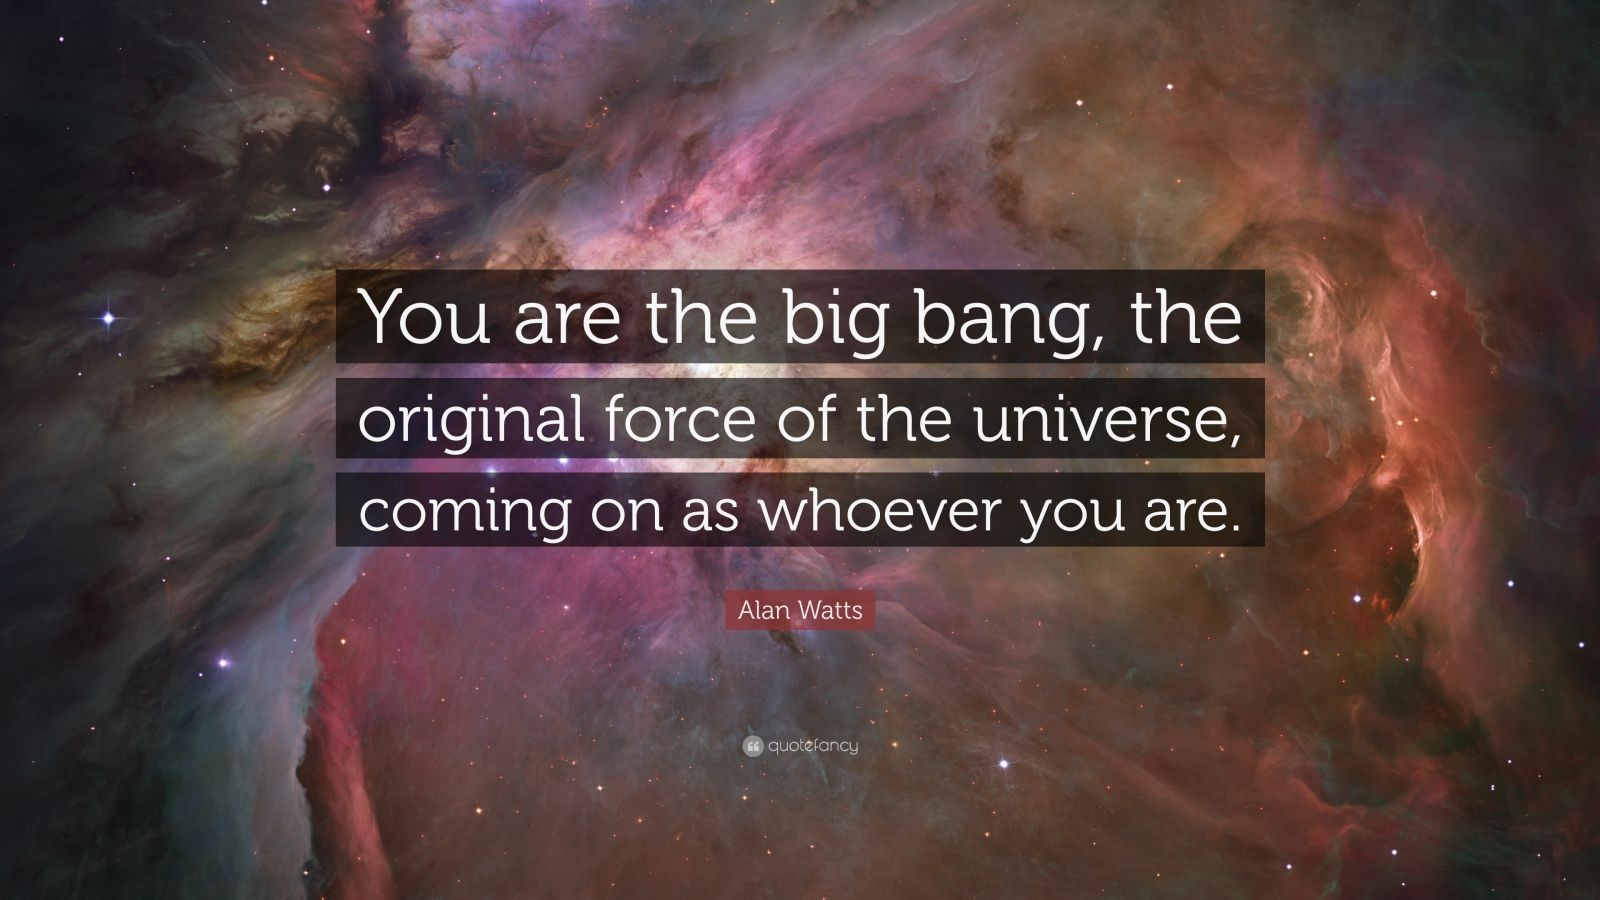 """Alan Watts Quote: """"You are the big bang, the original force of the universe, coming on as whoever you are."""""""